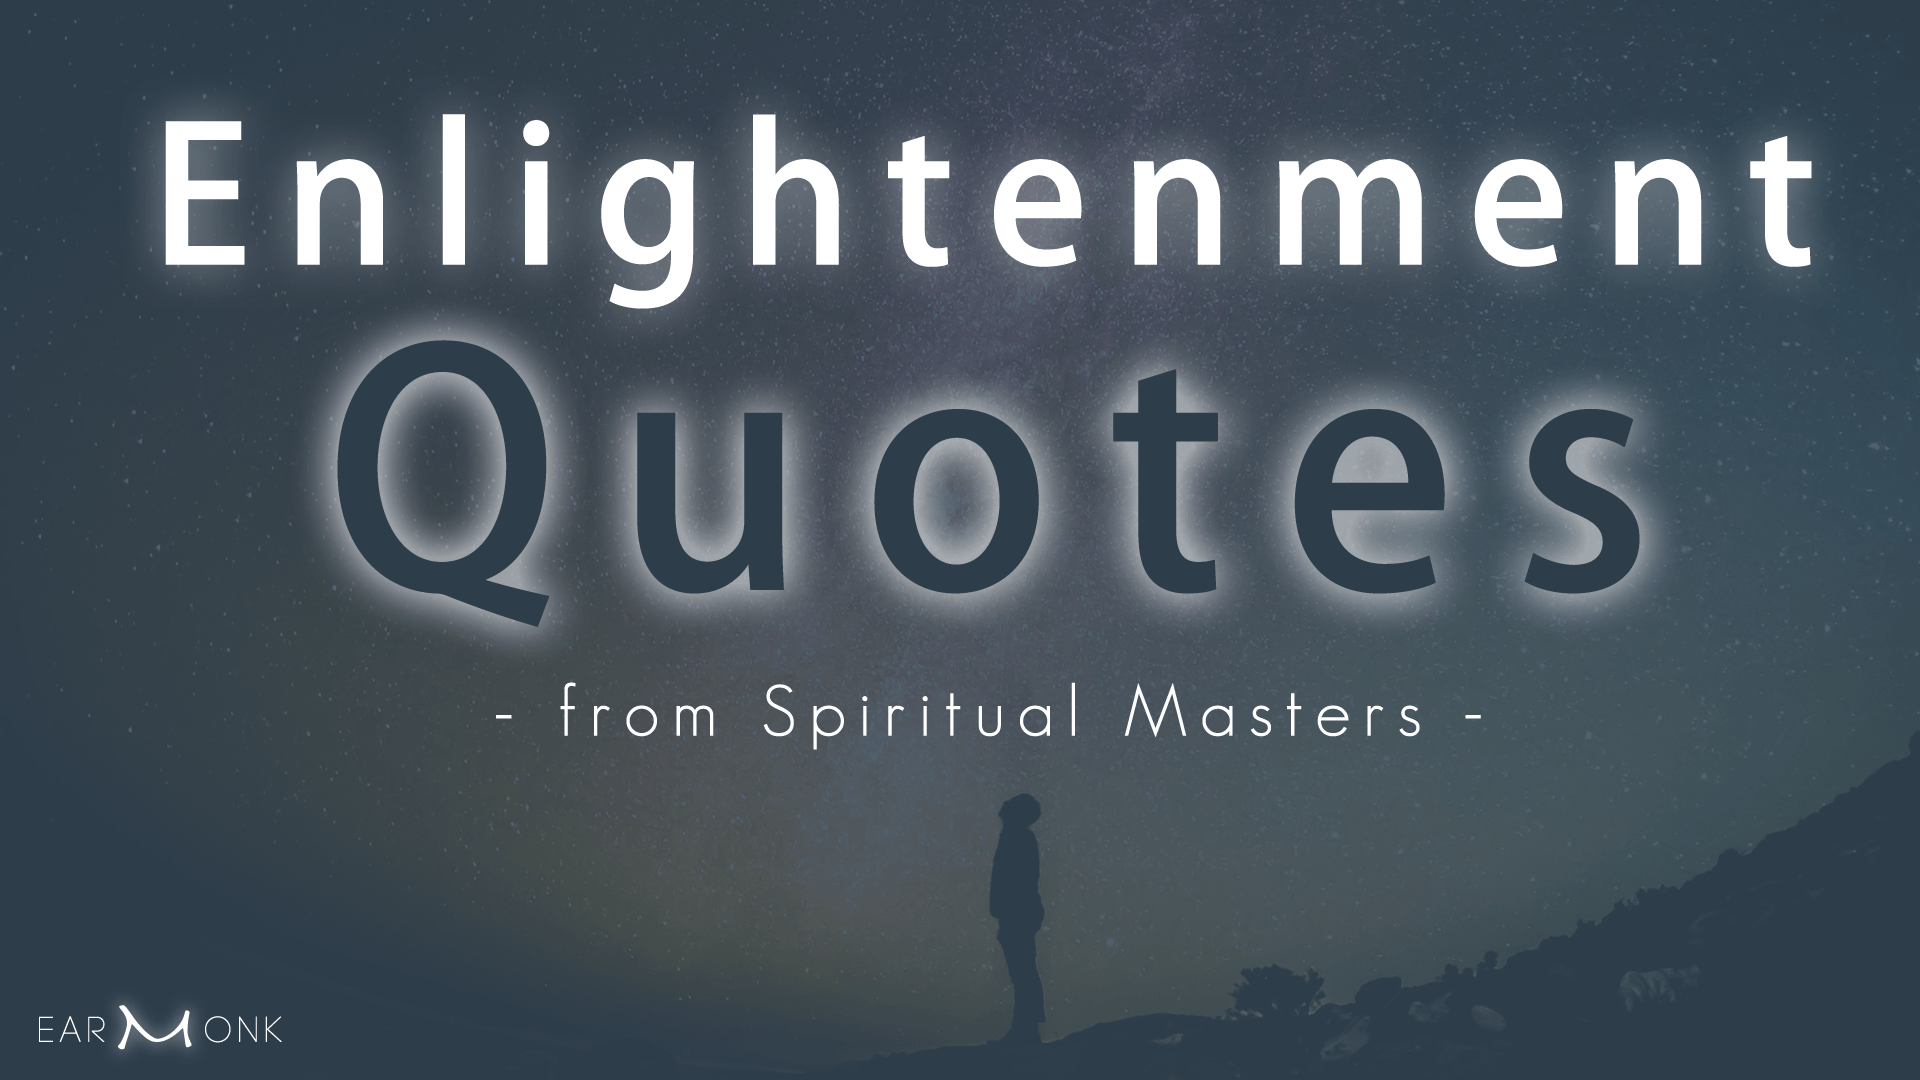 enlightenment quotes spiritual masters